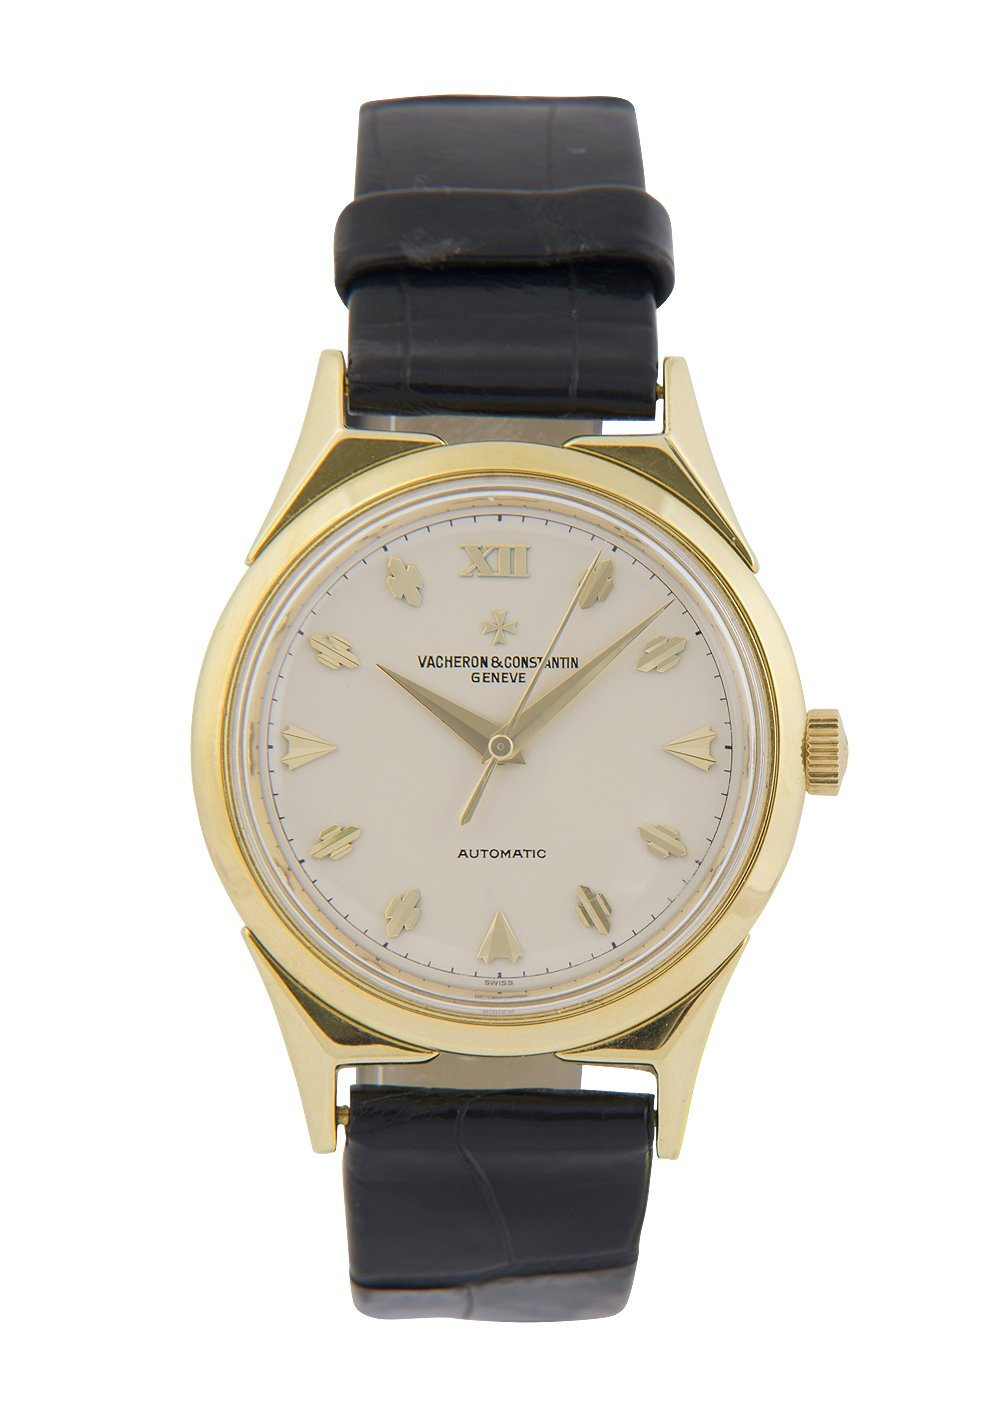 Vacheron Constantin Vintage 18k 34mm Watch, Presented to Dr. Henry E Kentopp Edition